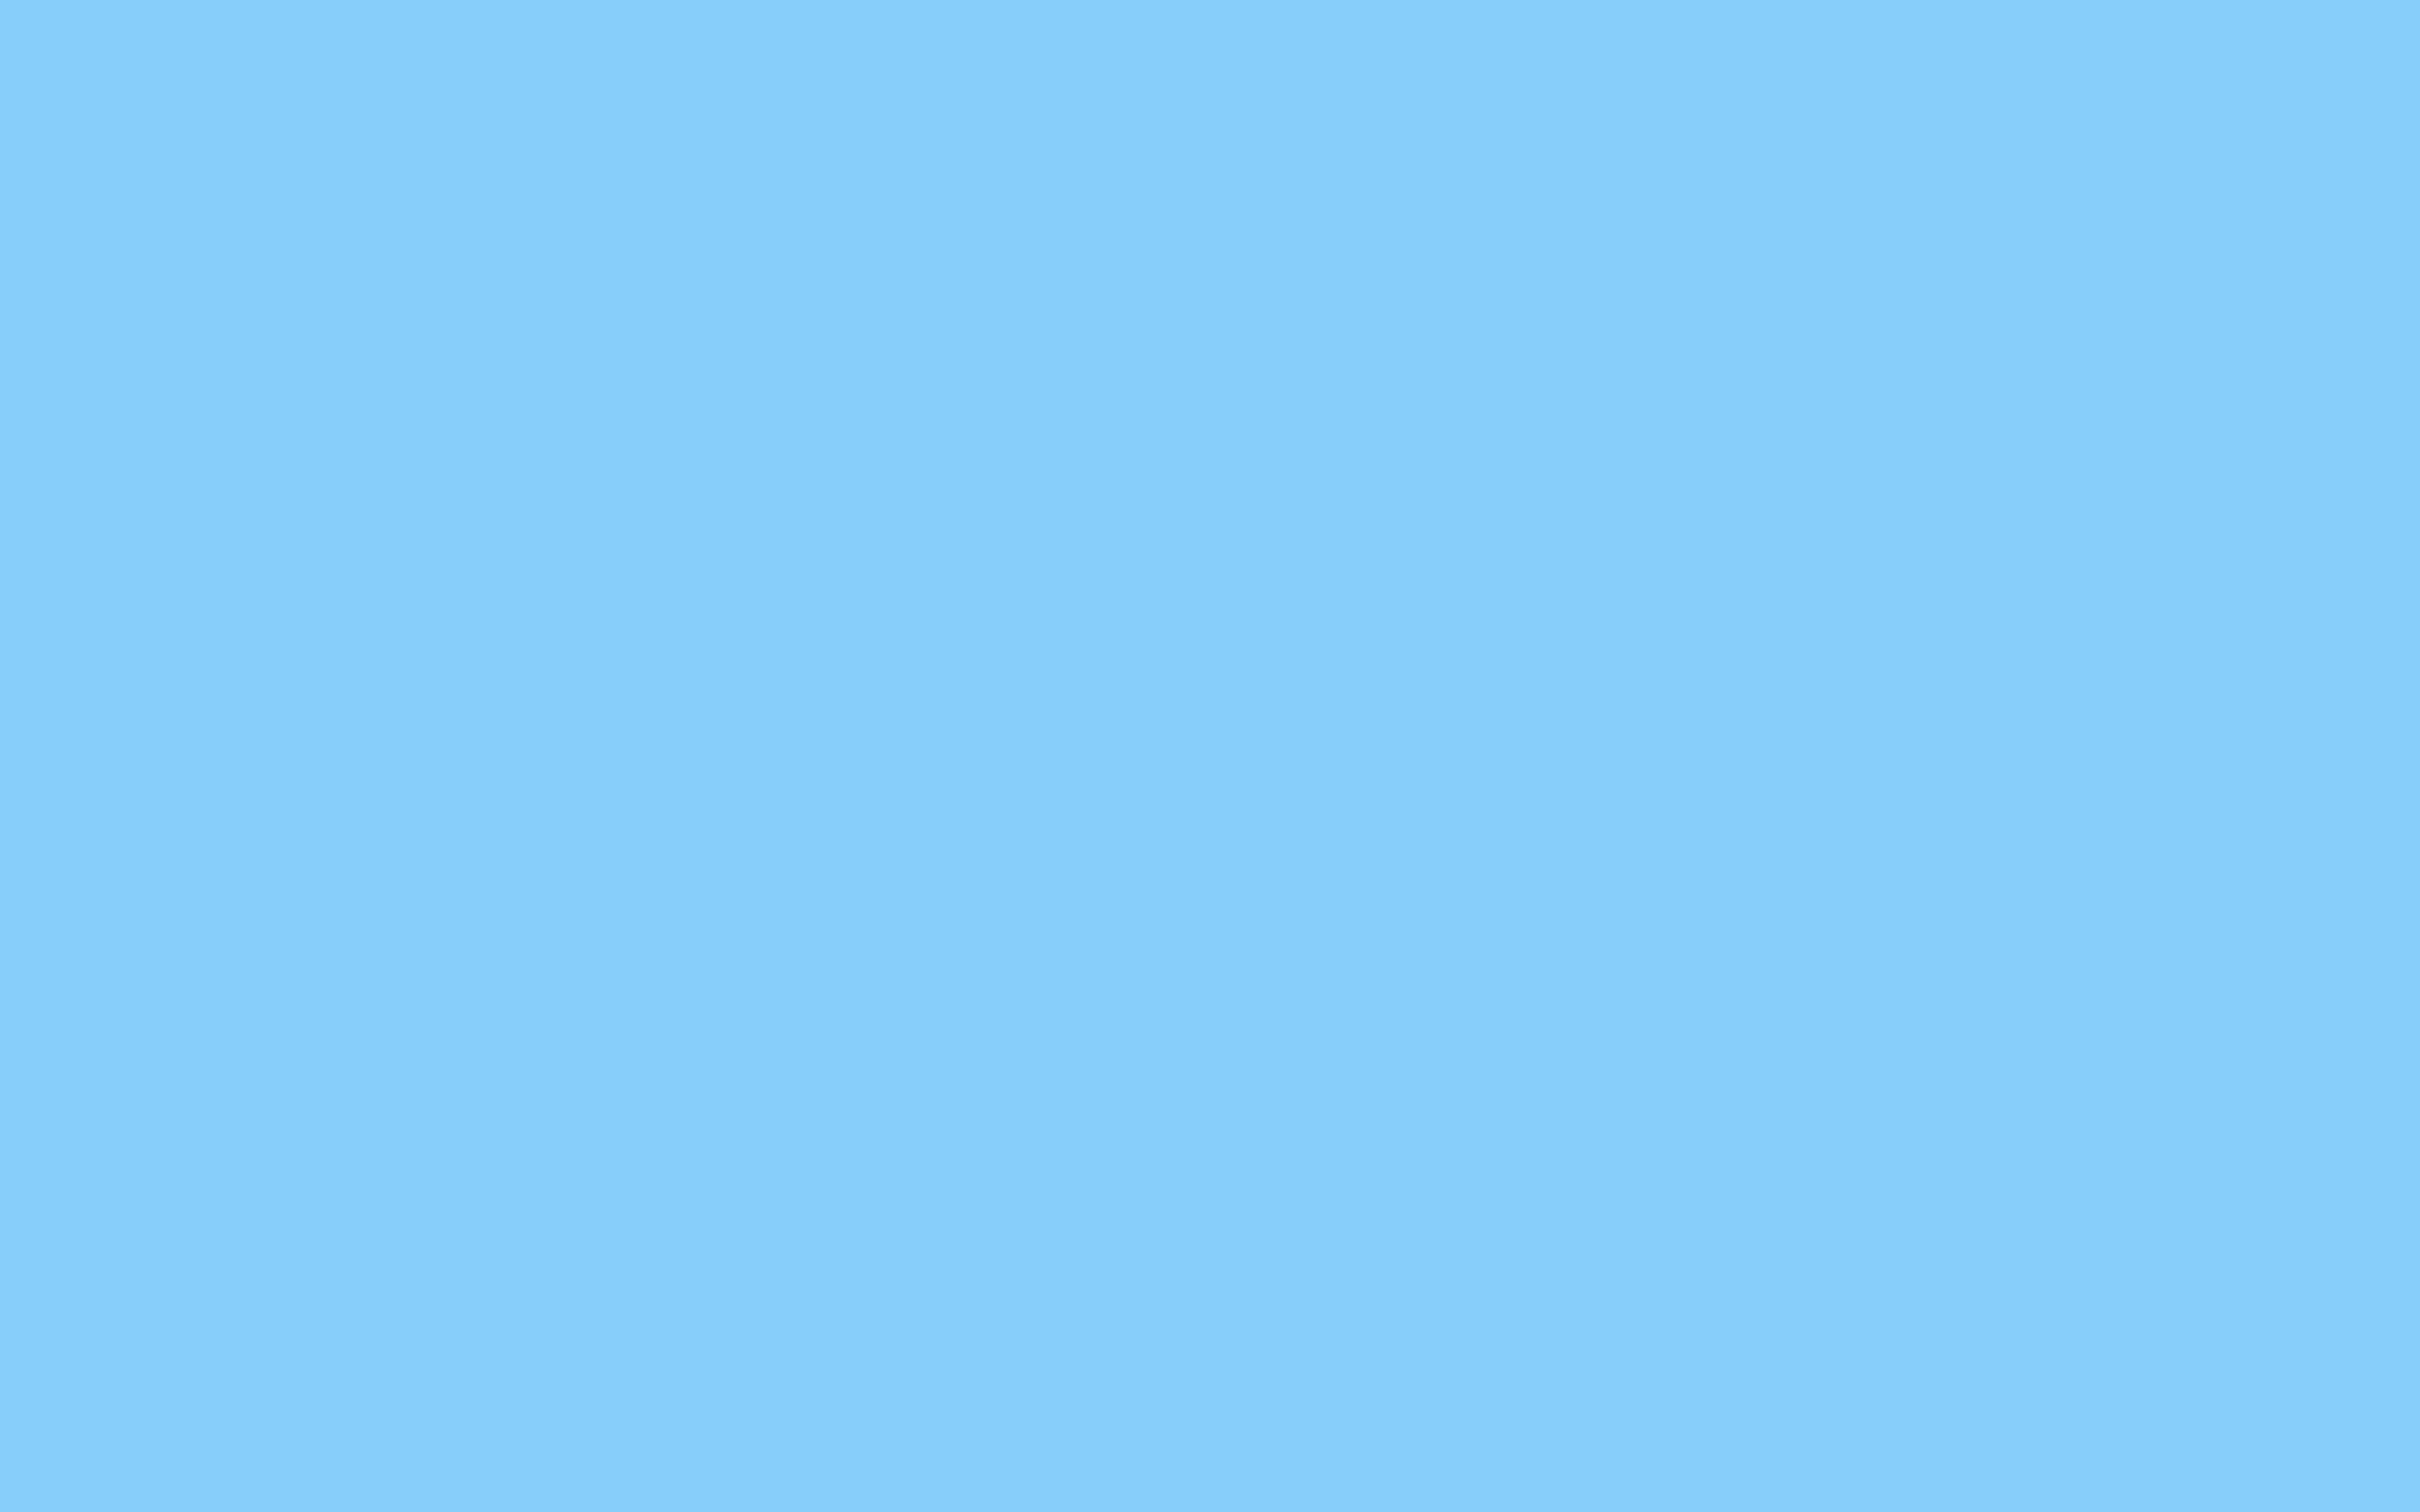 2560x1600 Light Sky Blue Solid Color Background